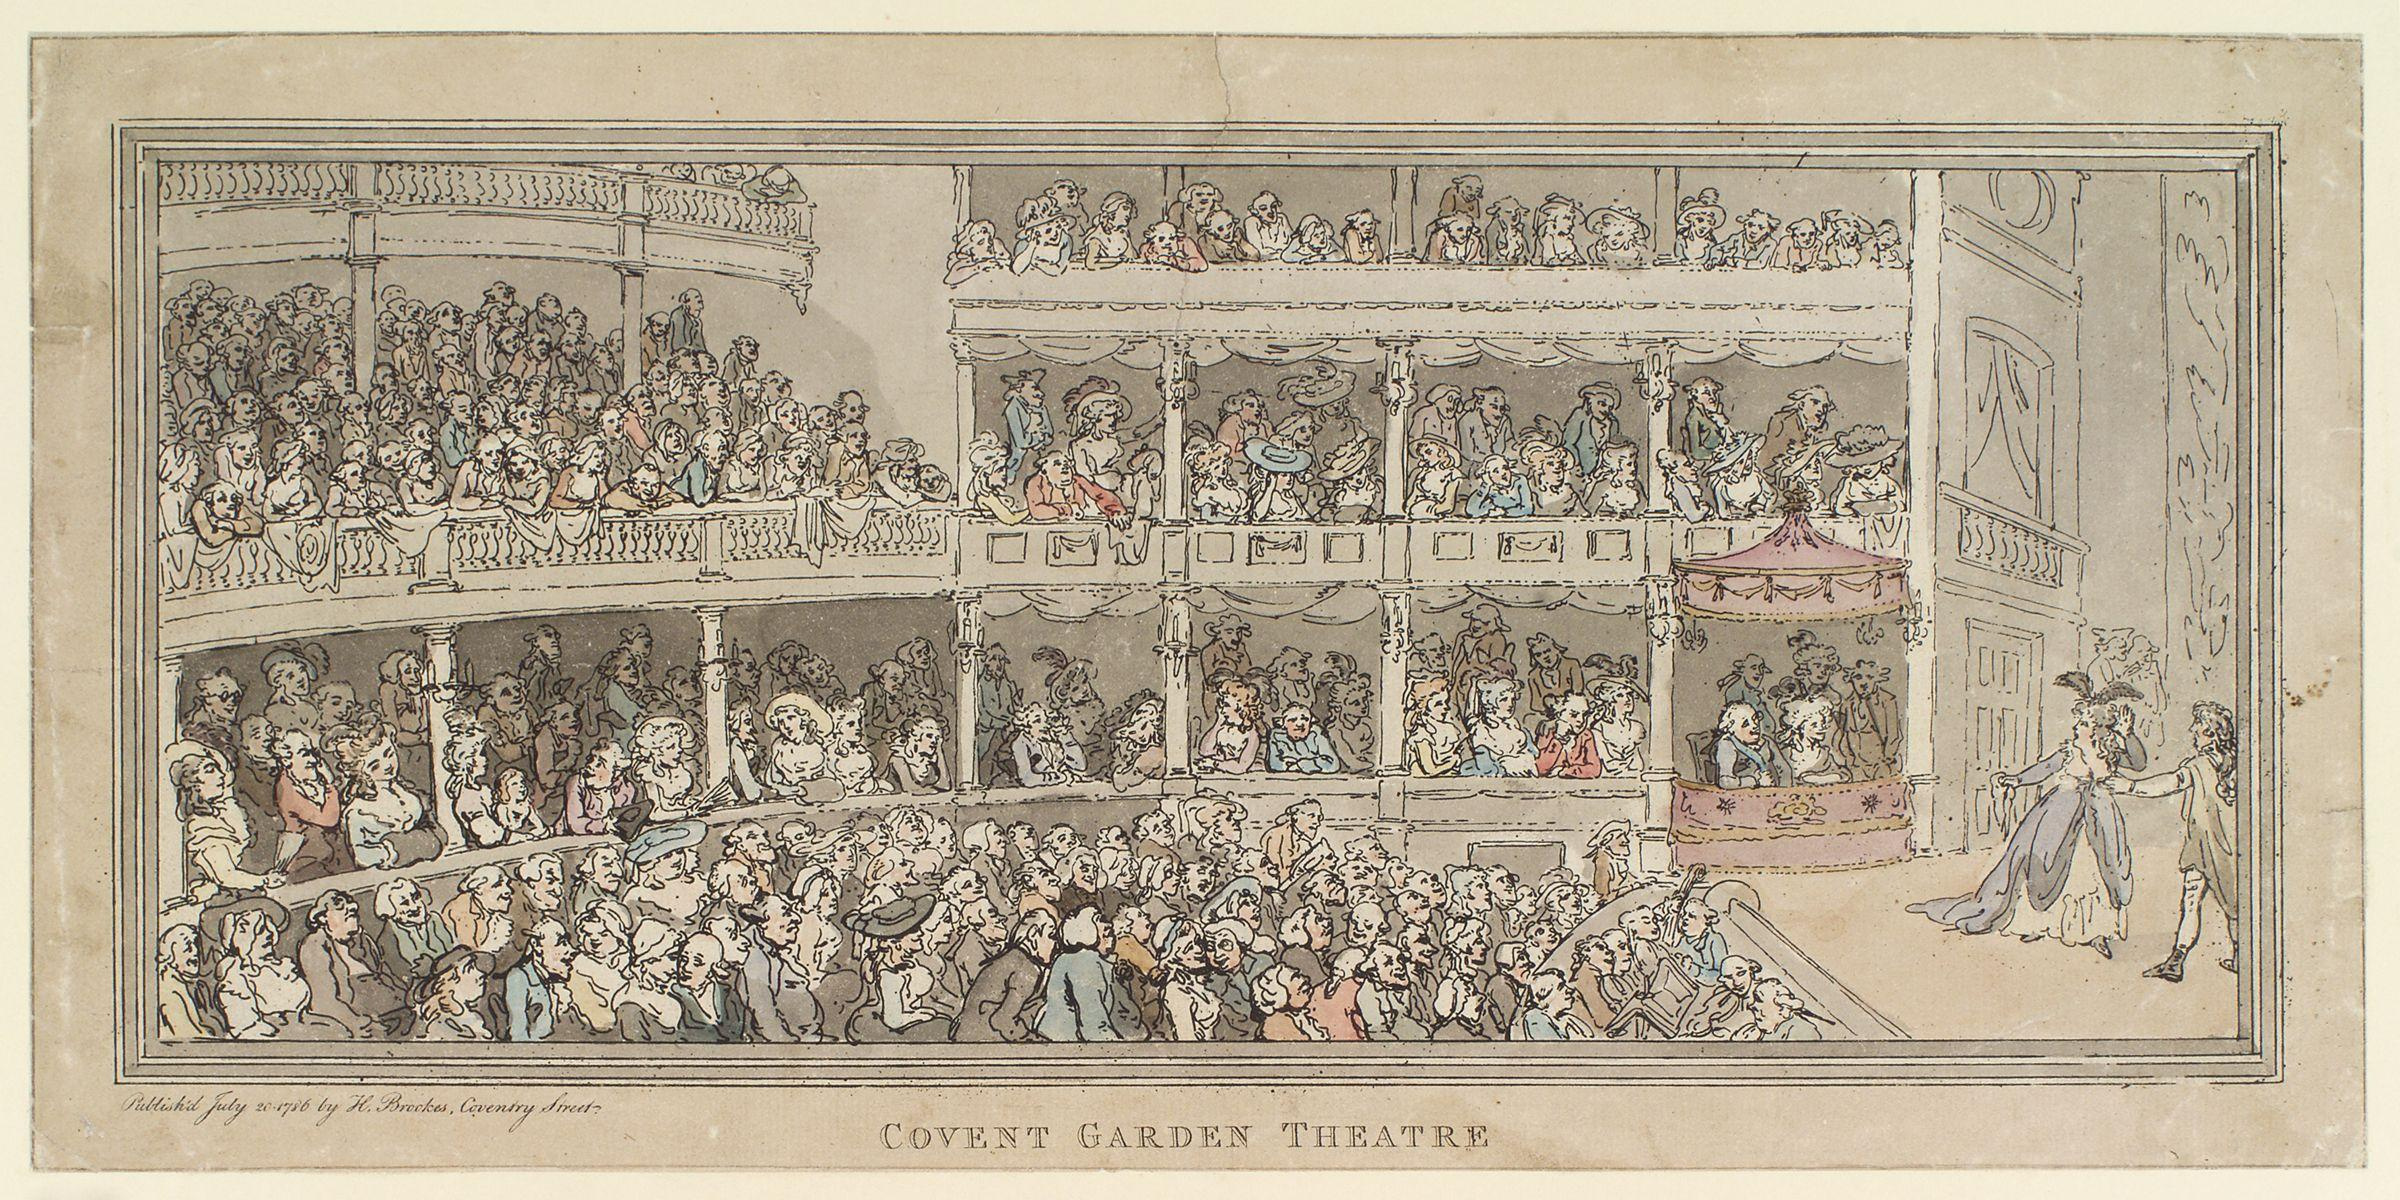 Covent Garden Theatre History File Covent Garden Theatre by